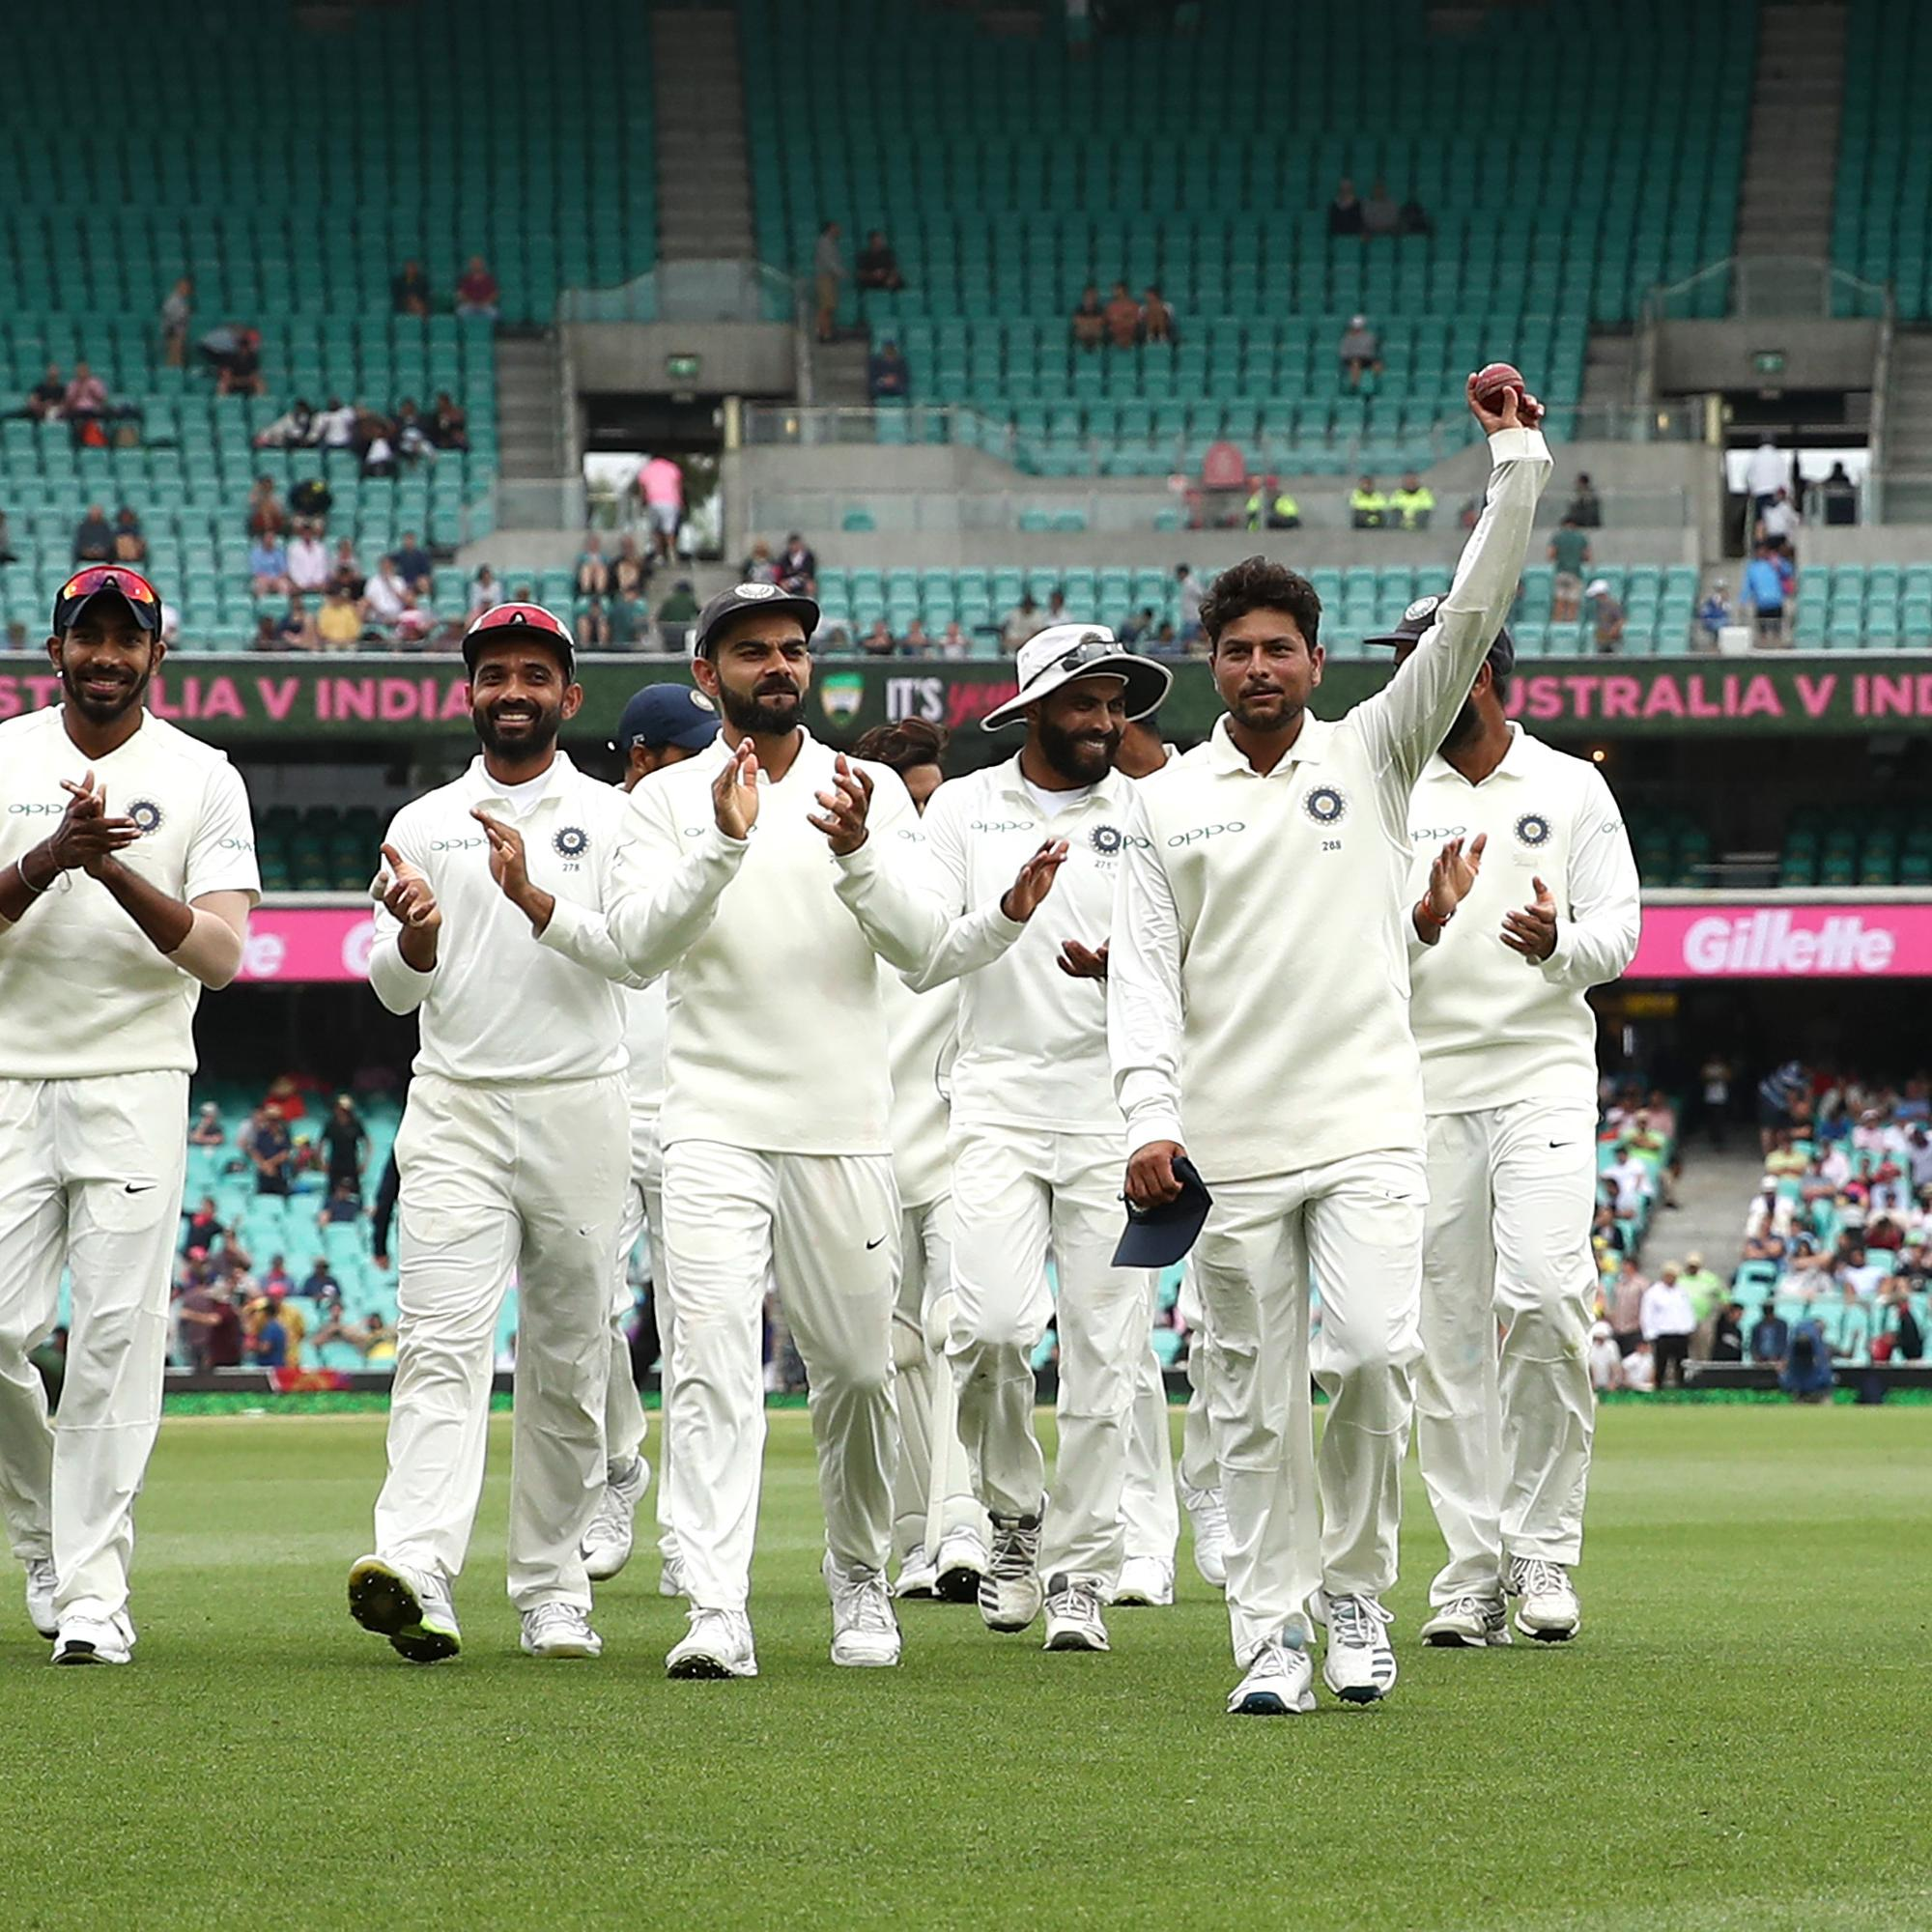 Match drawn - Australia vs India 4th Test Match Summary, Report